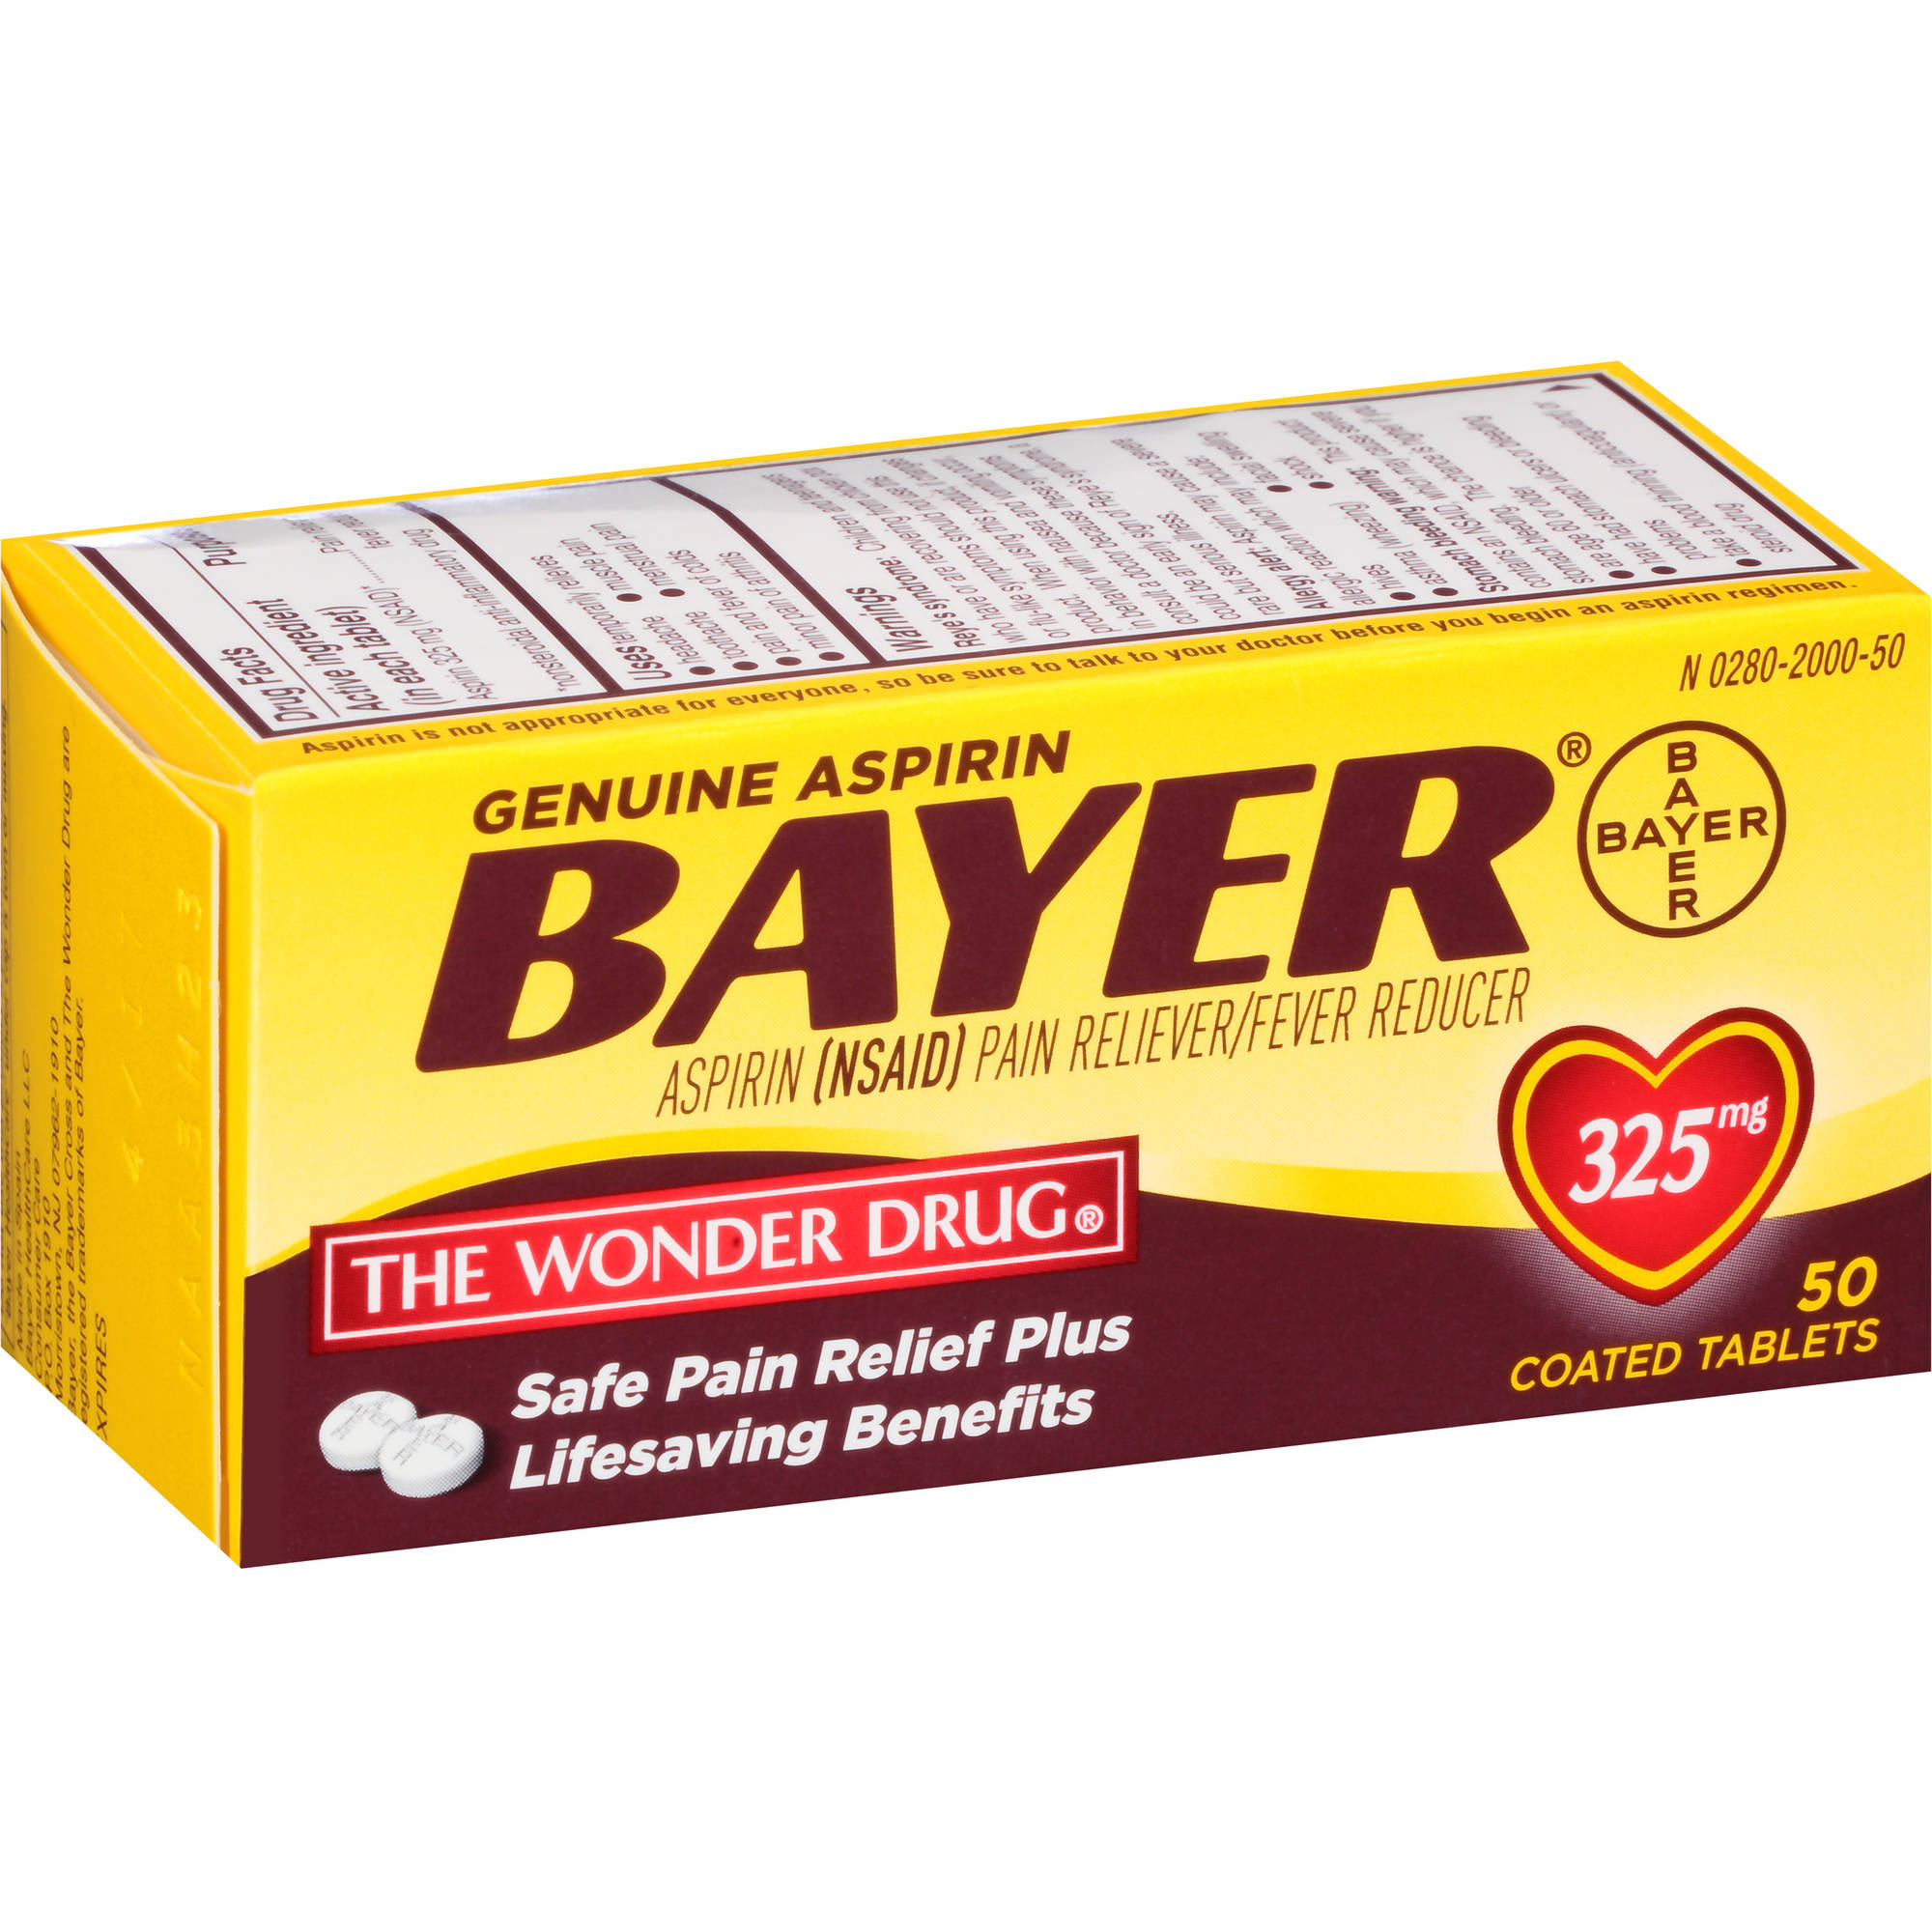 Bayer Aspirin Pain Reliever/Fever Reducer, 325mg, 50 count